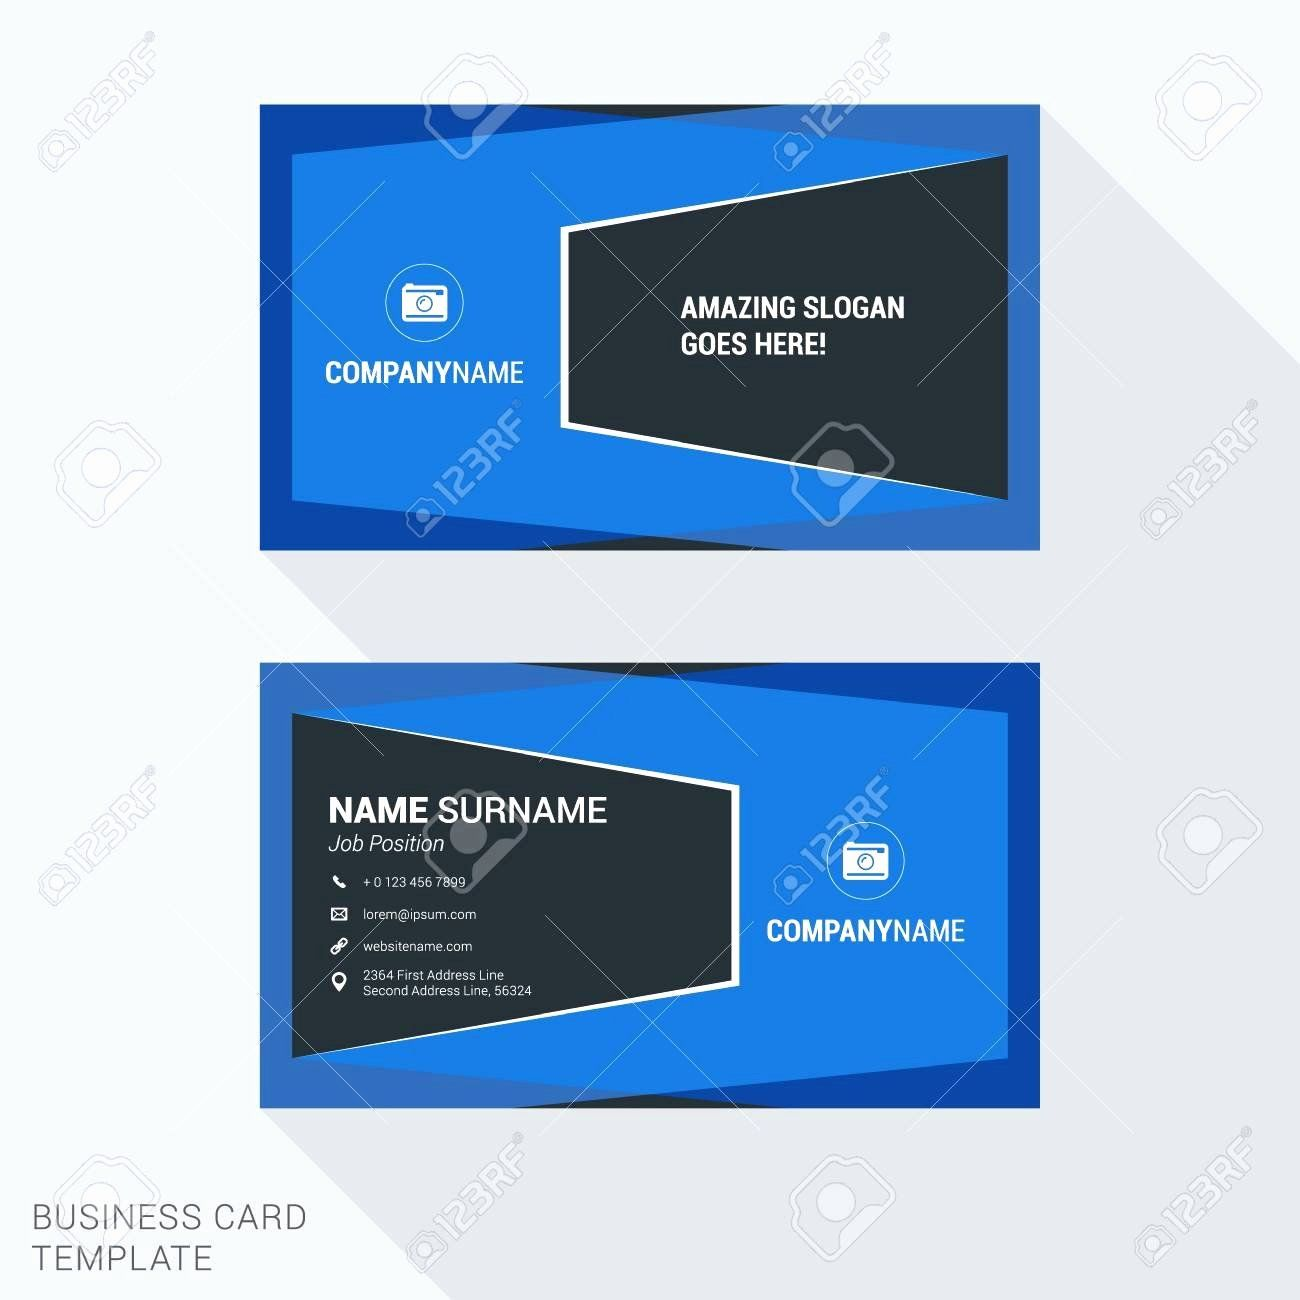 Graduation Name Card Template Best Of Fantastic Pics Graduation Name Card Template Graduation Card Templates Name Cards Card Template